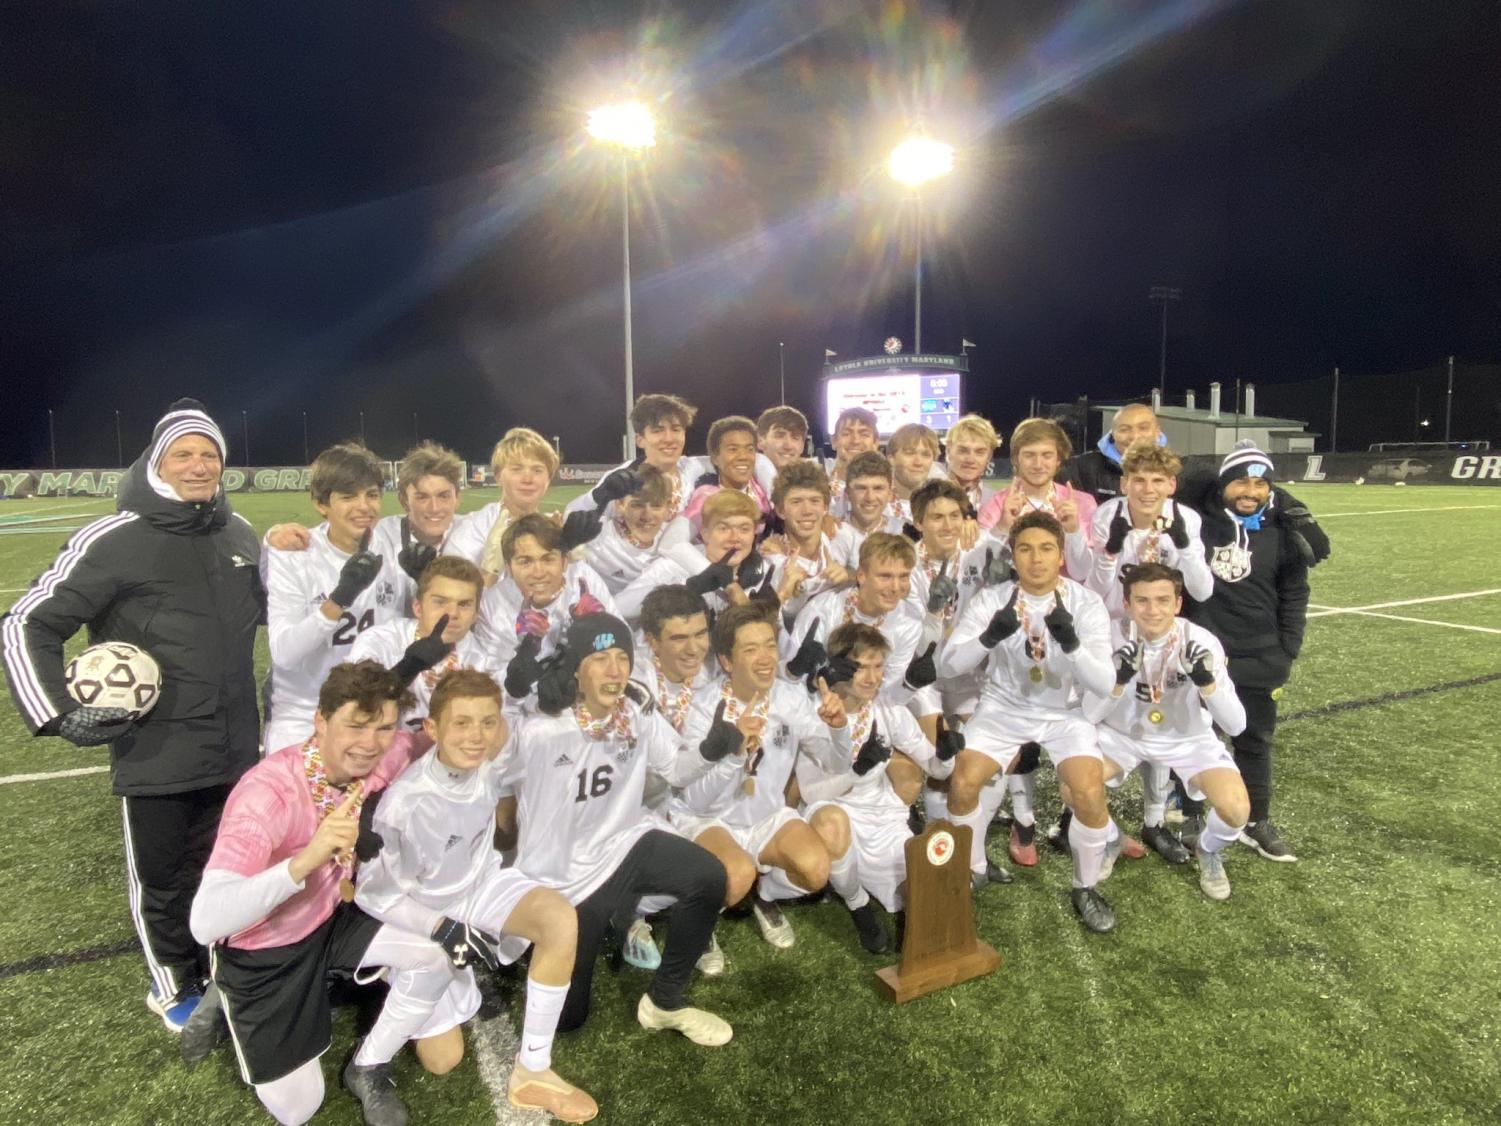 The Vikes pose after the game with the State Championship trophy. The team defeated the Leonardtown Raiders to secure Whitman's eleventh boys soccer state title.